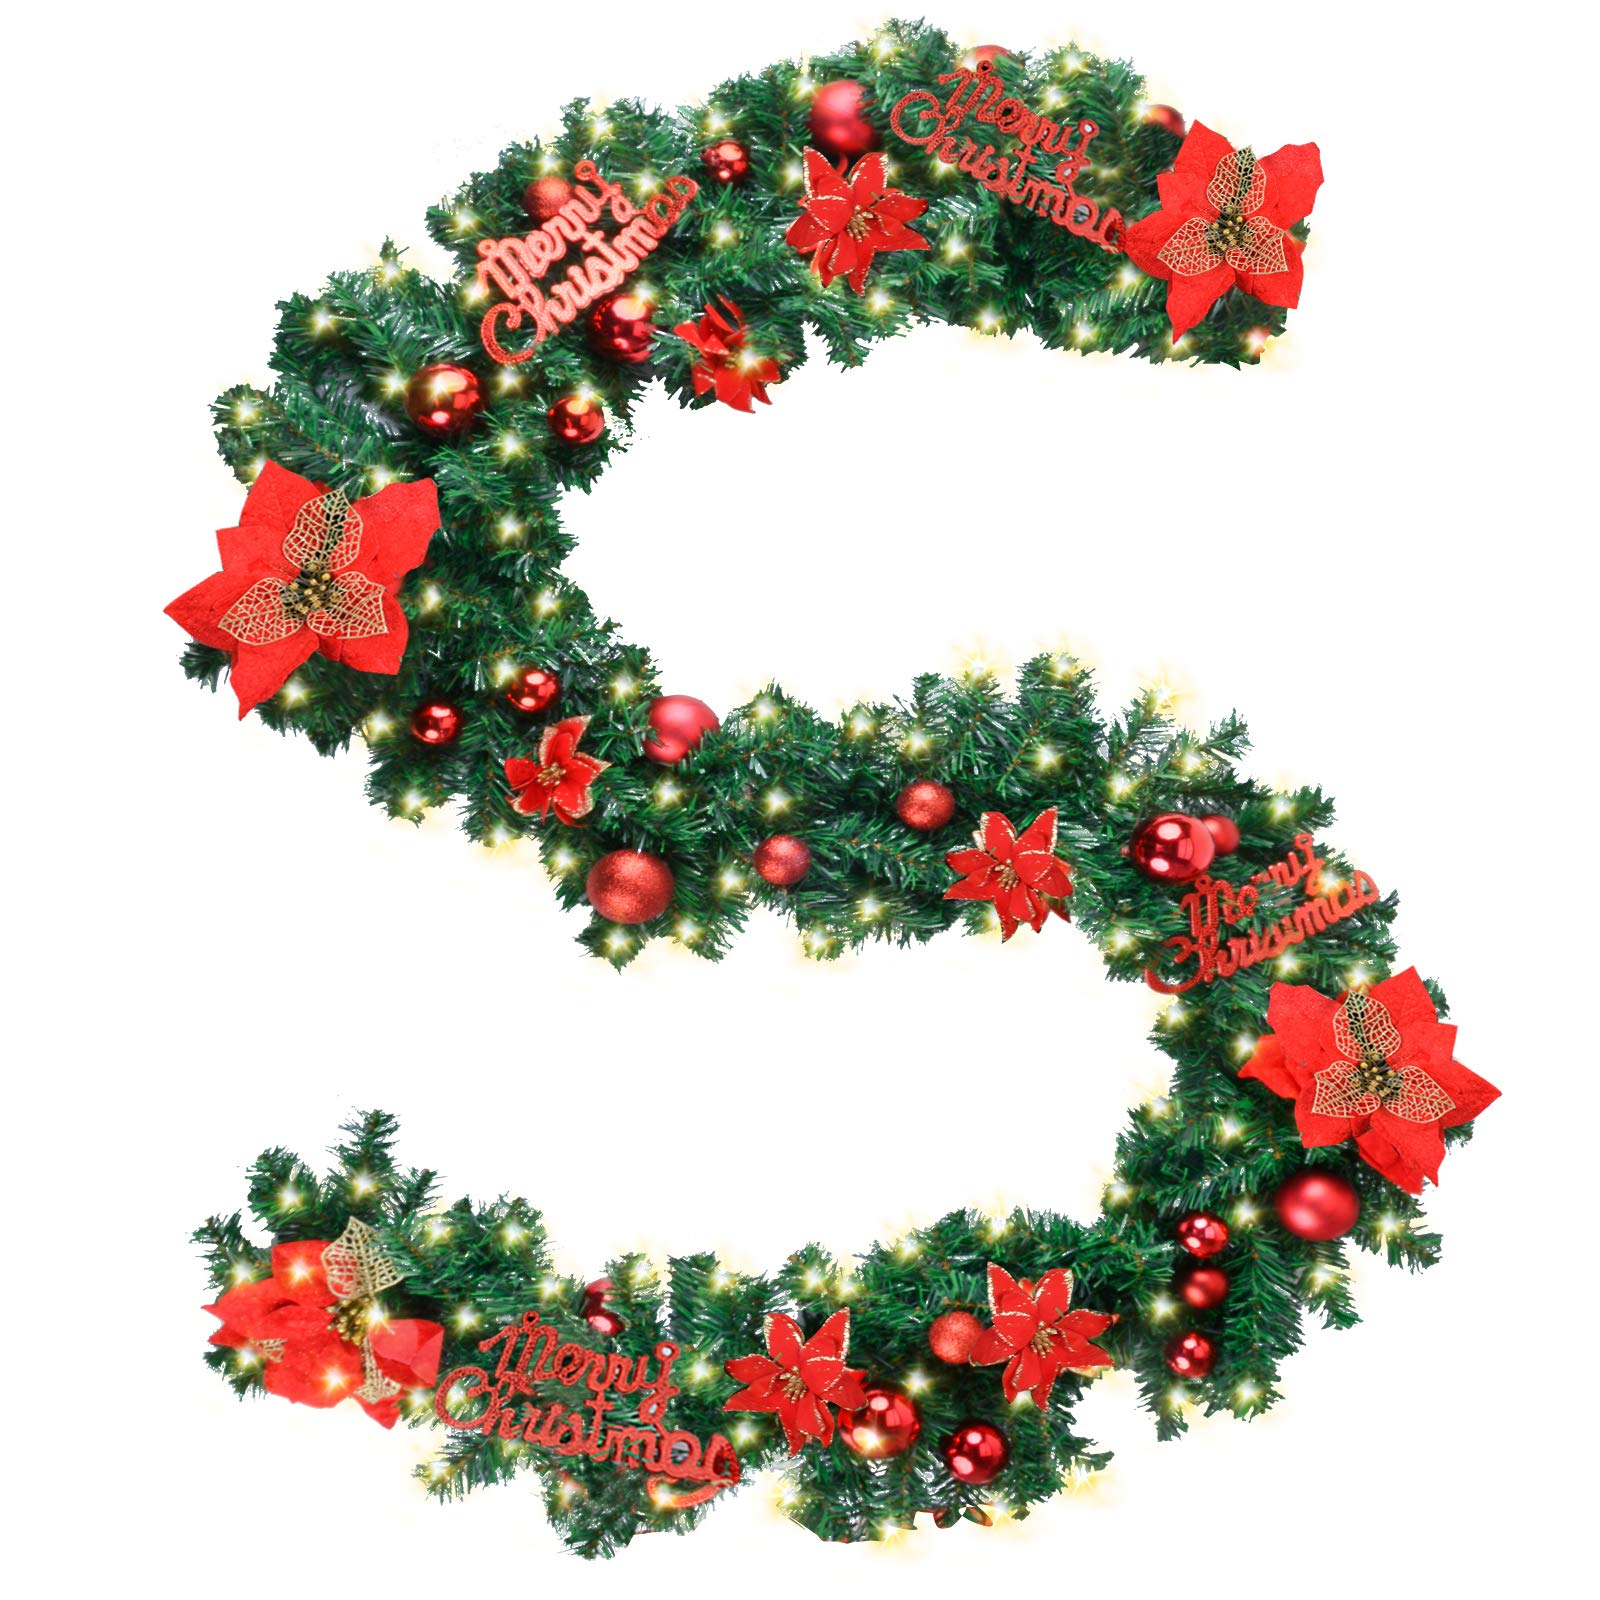 """Coxeer Christmas Garland, 9 Ft Holiday Graland Flower Artificial Pine Garland with """"Merry Christmas""""Font 100 Warm White Battery Operated LED Lights for Christmas Decor (Red)"""